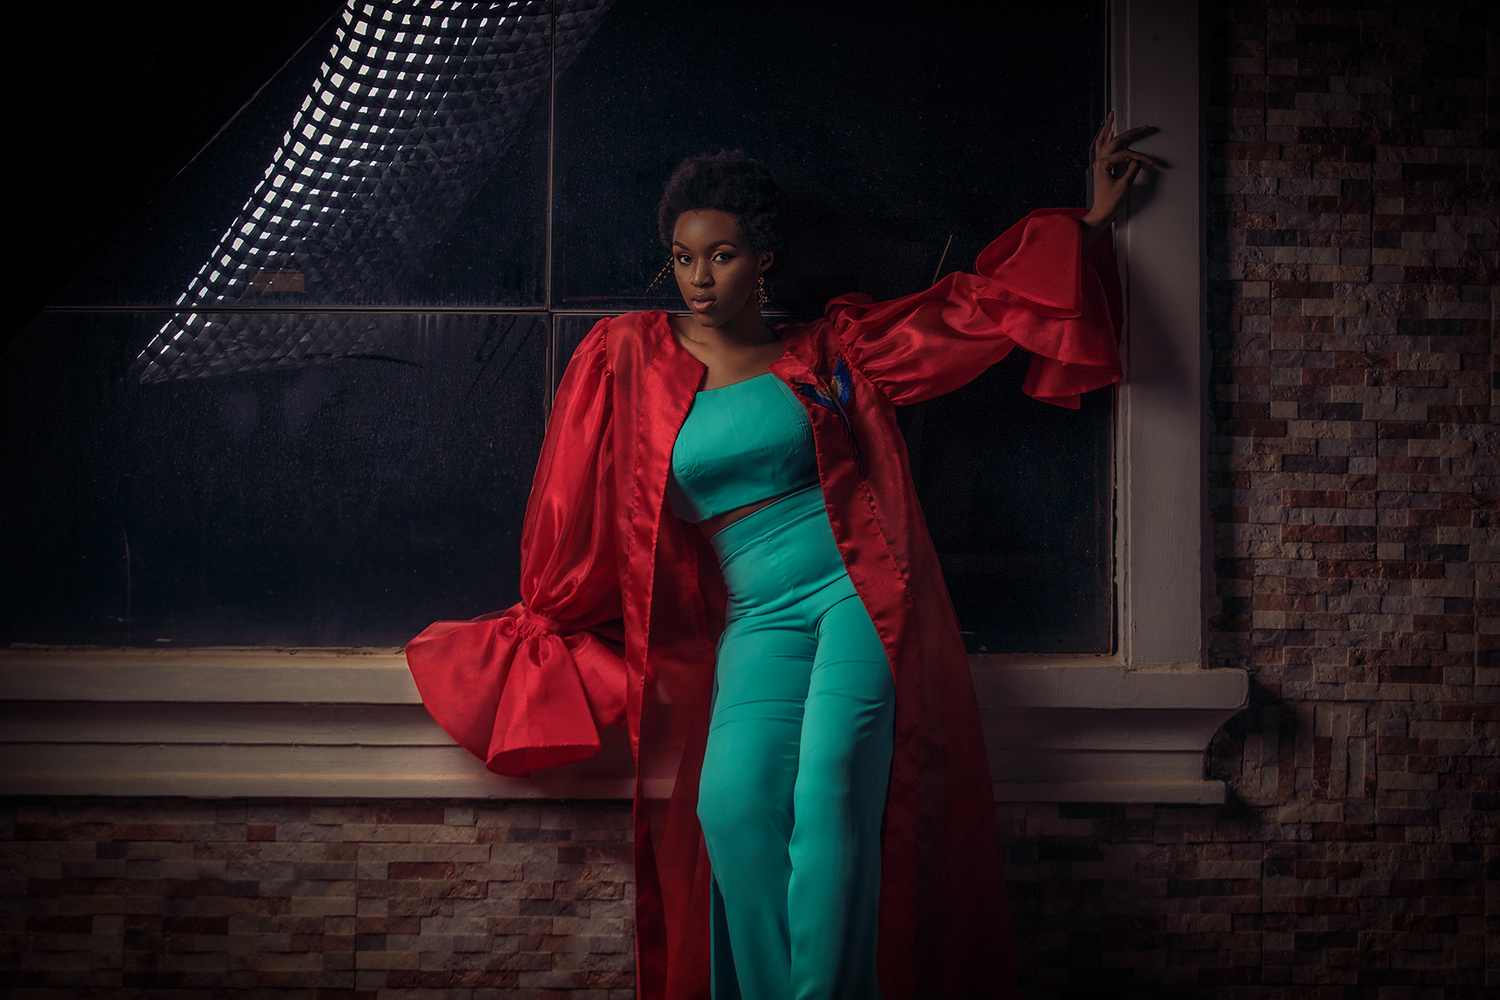 Red and Turquoise by Rodney Omeokachie